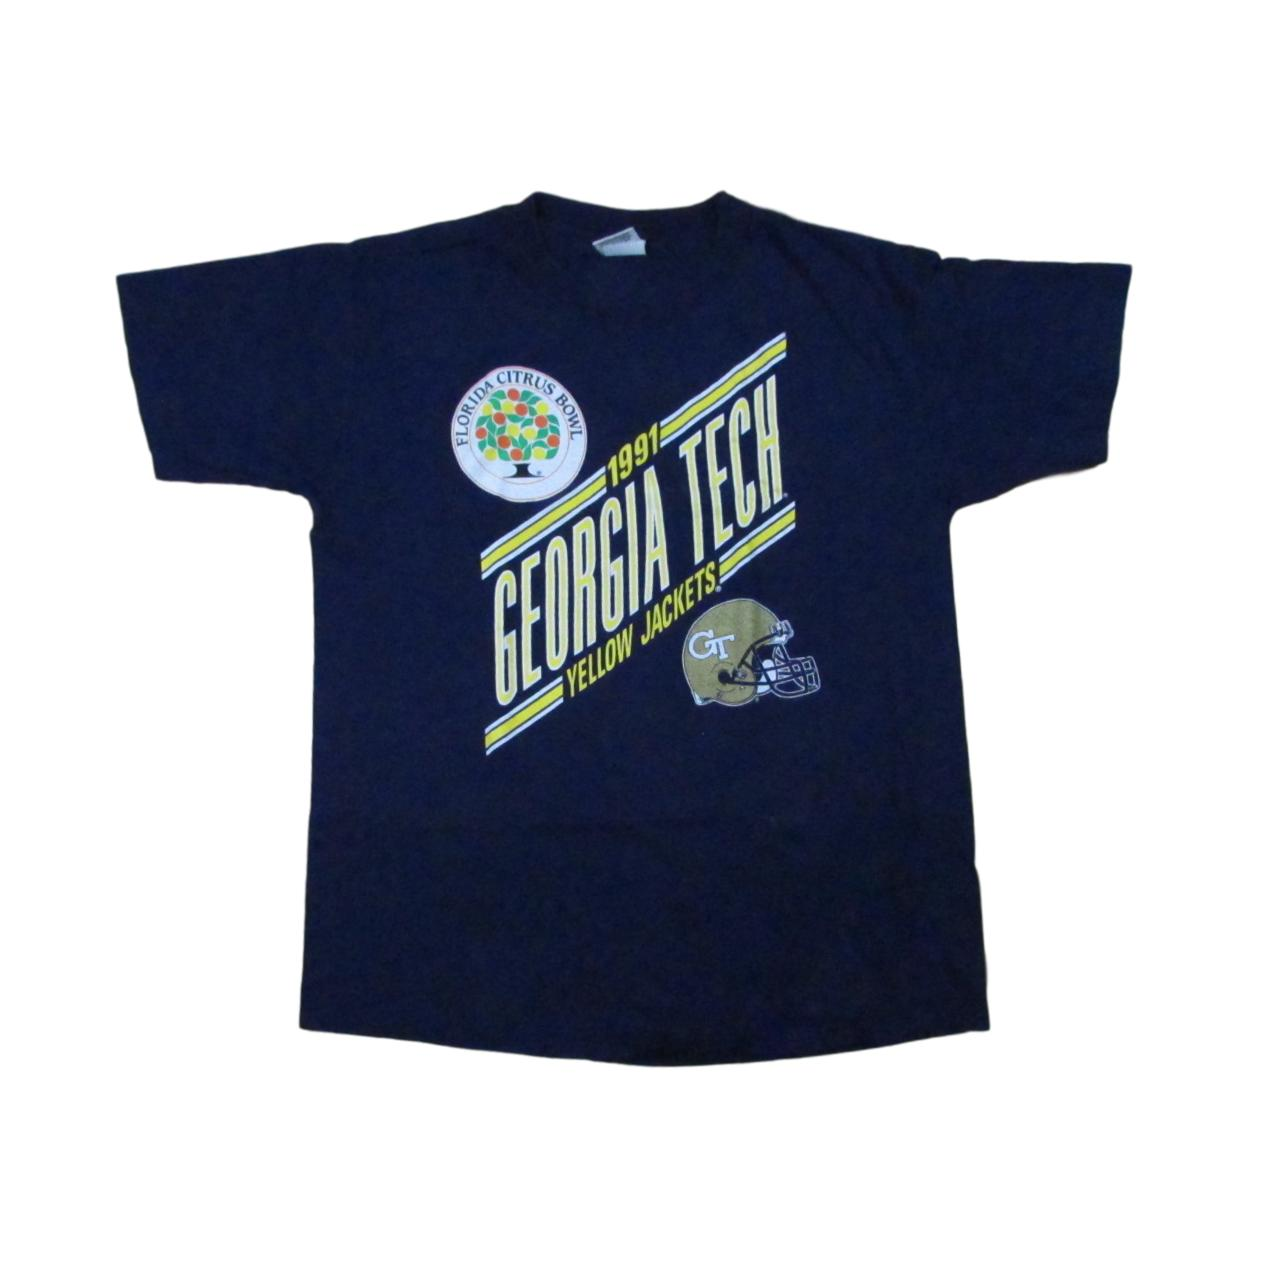 1991 Georgia Tech Yellow Jackets College Football T-Shirt NUTMEG Sz XL